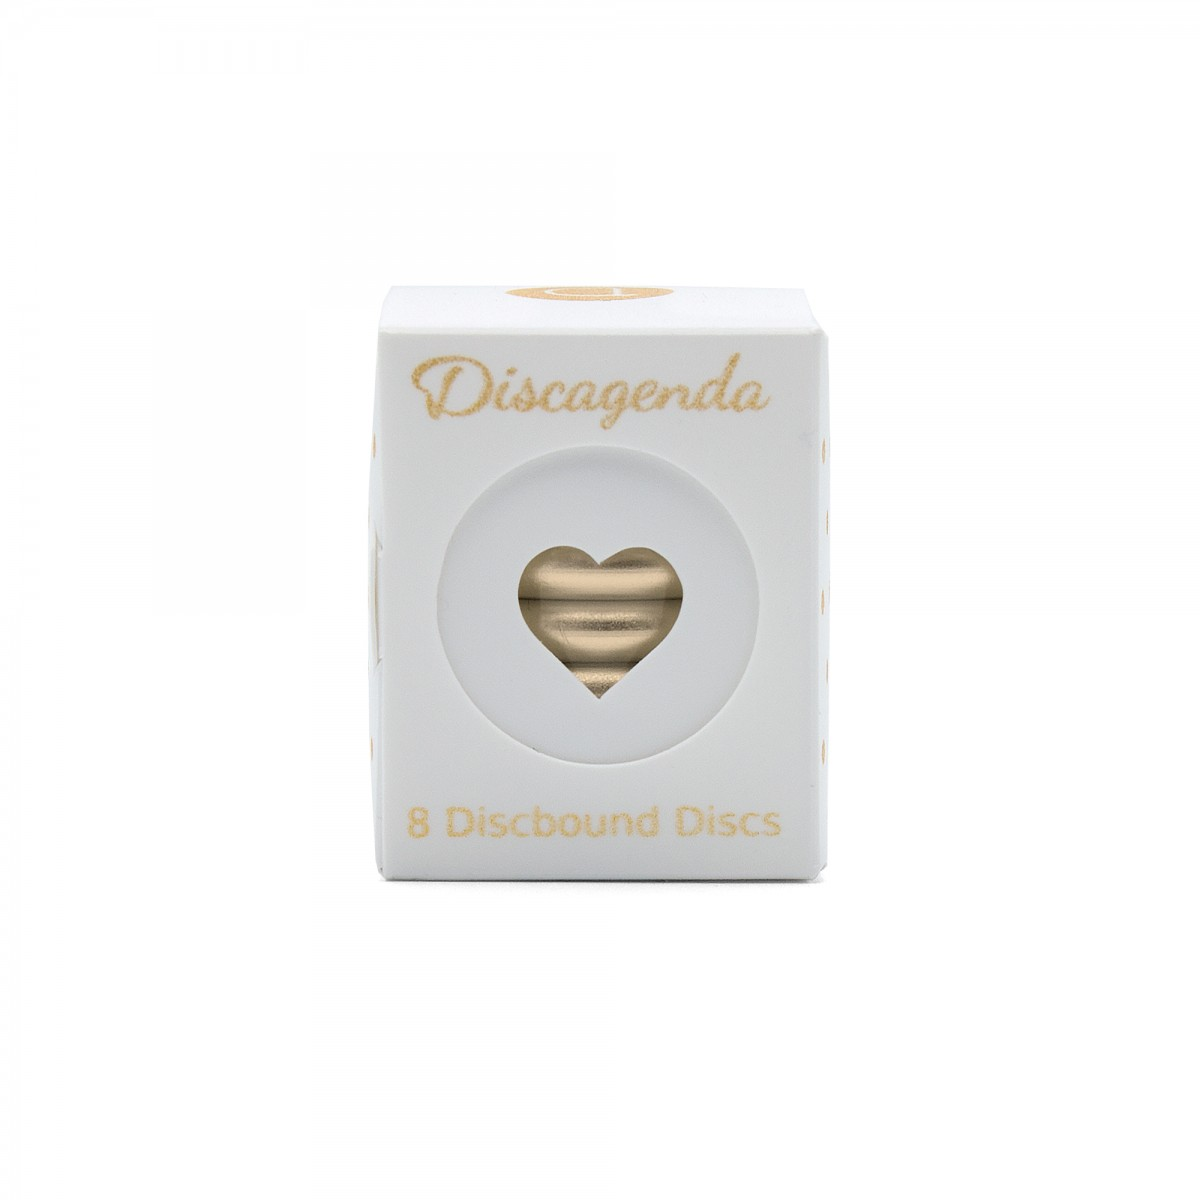 DISCAGENDA DISCBOUND DISCS 33MM 8 PIECE SET GOLD